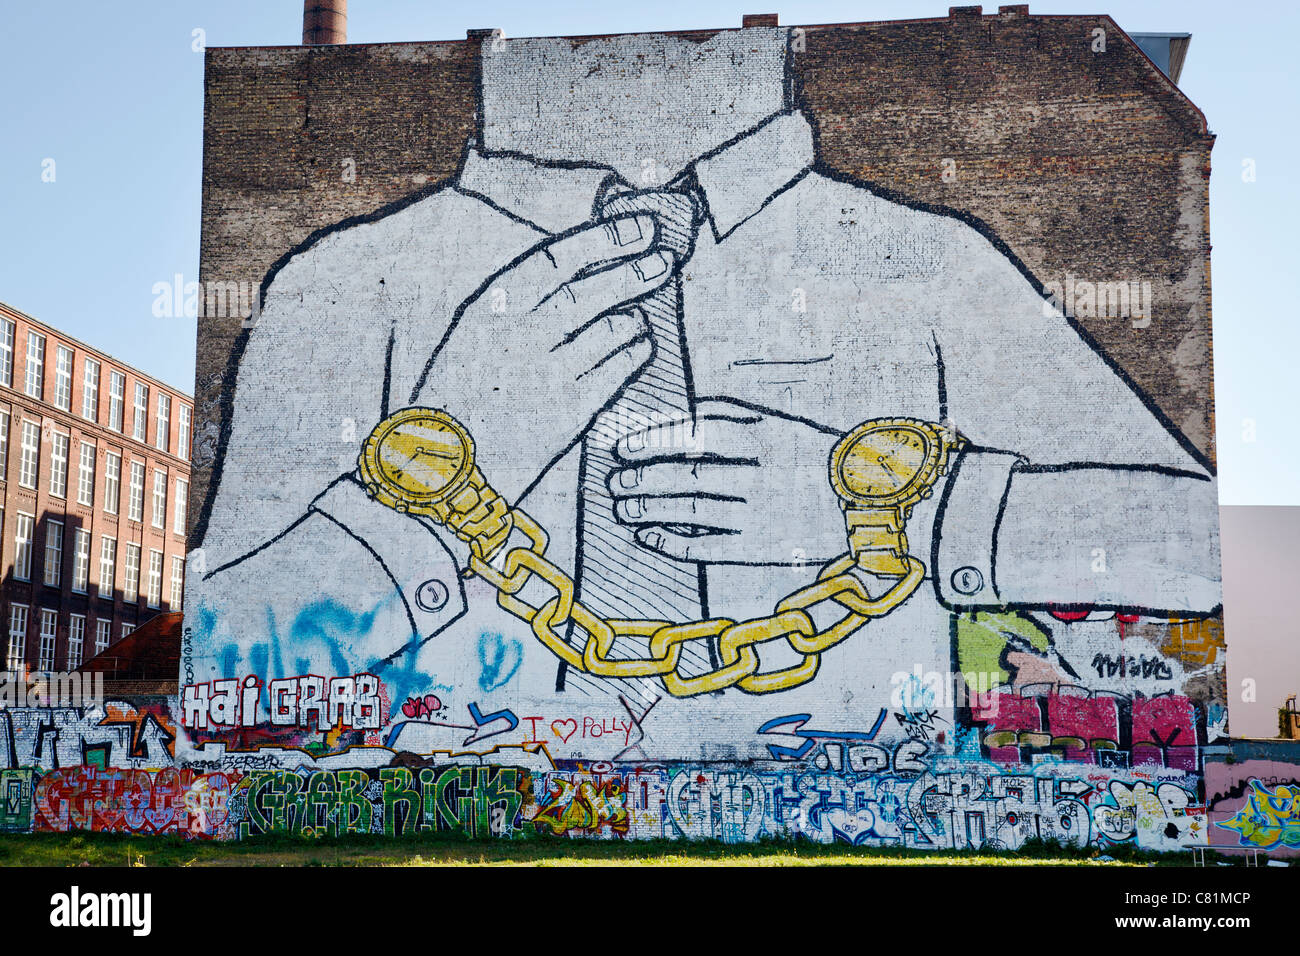 Graffiti by Blu in Cuvrystrasse, Berlin, Germany - Stock Image